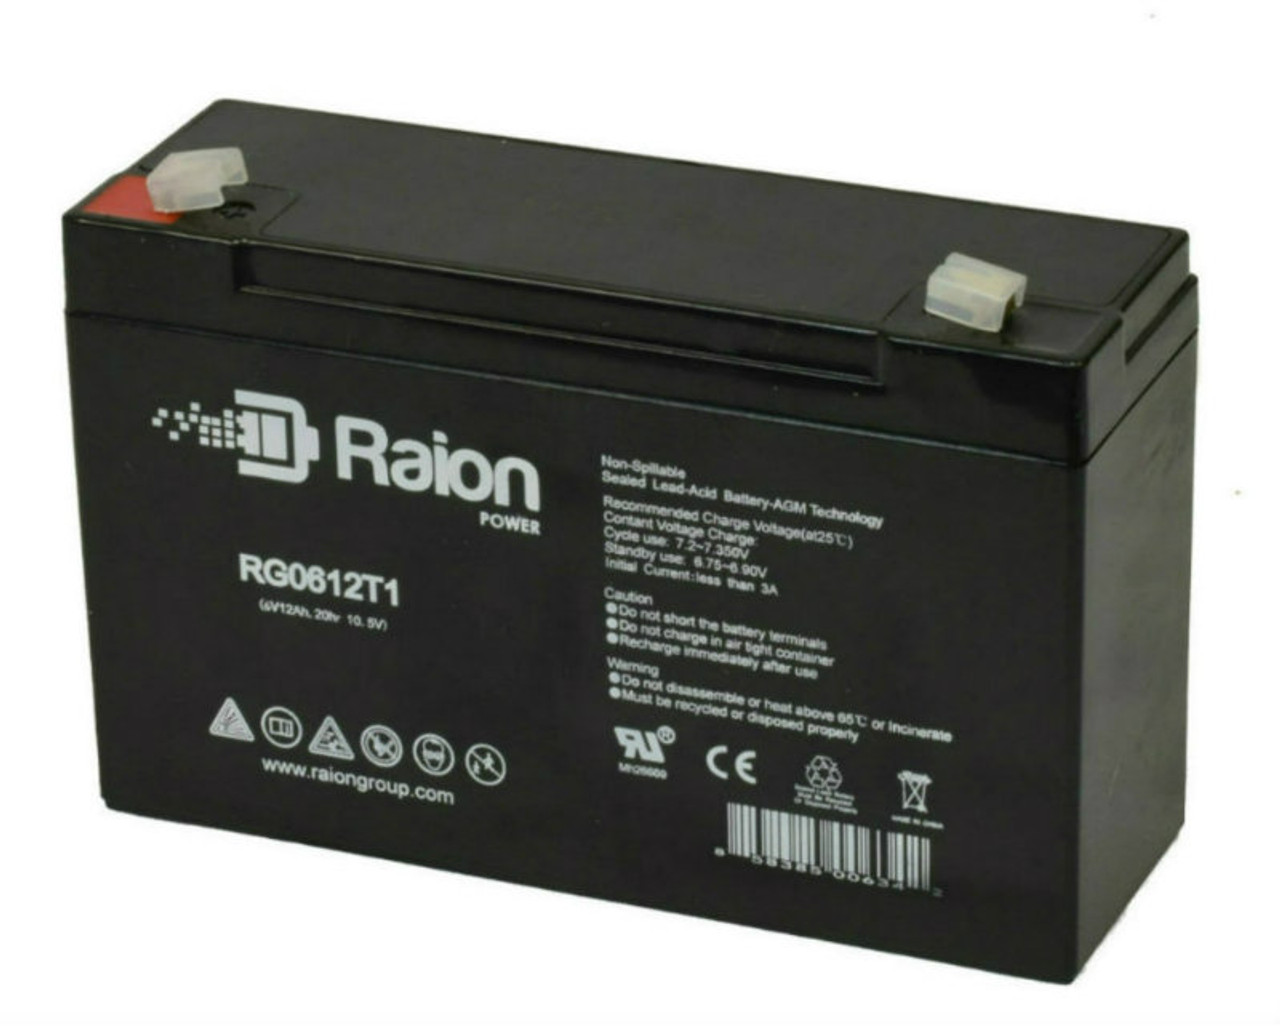 Raion Power RG06120T1 Replacement Battery Pack for Teledyne H2ET12S7 emergency light